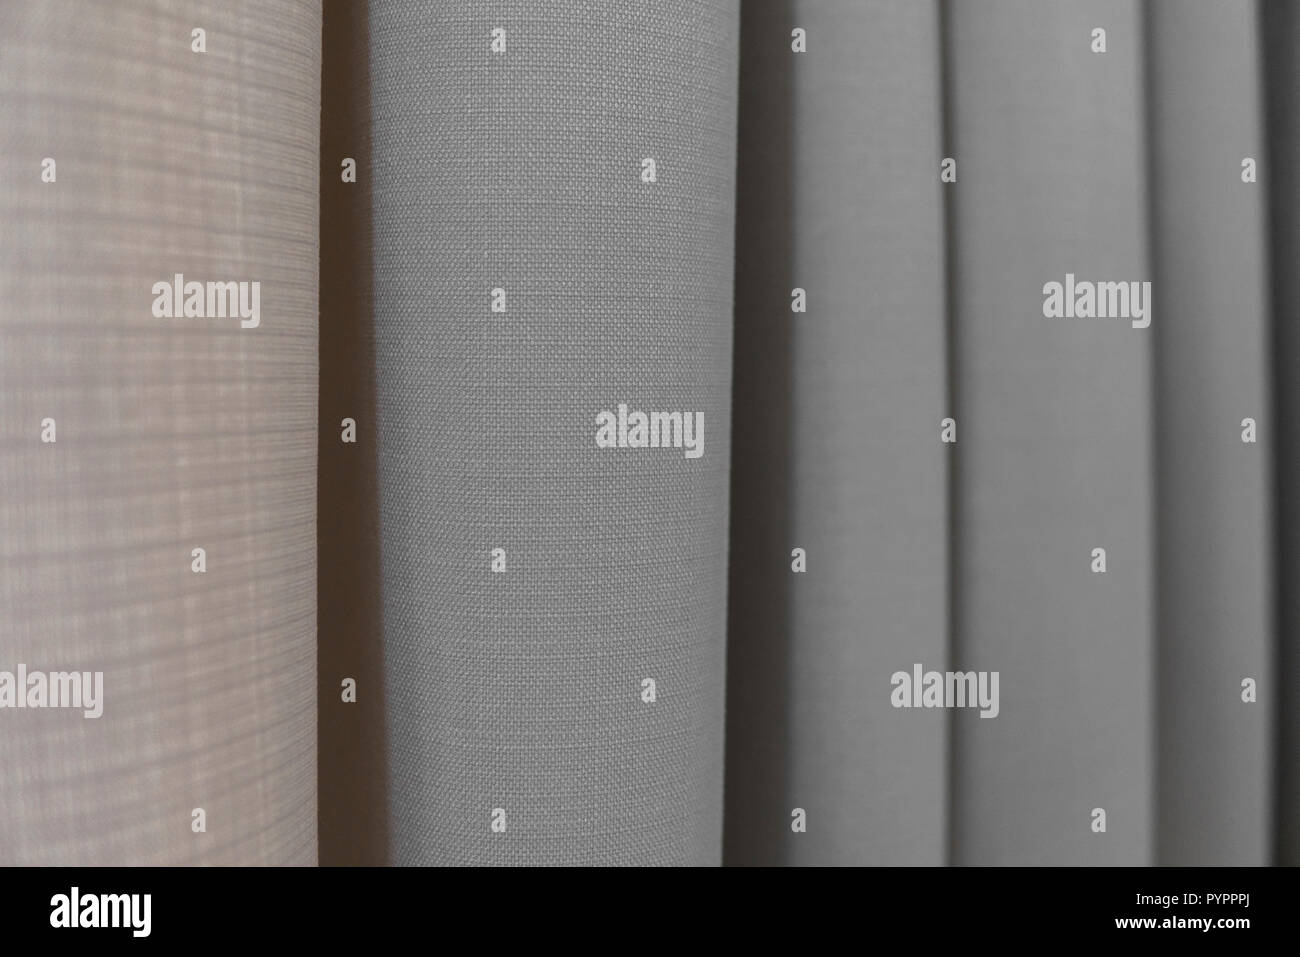 Close-up view of bright curtain in thin and thick vertical folds made of dense fabric.Textured abstract backgrounds and wallpapers.Materials and textiles. - Stock Image